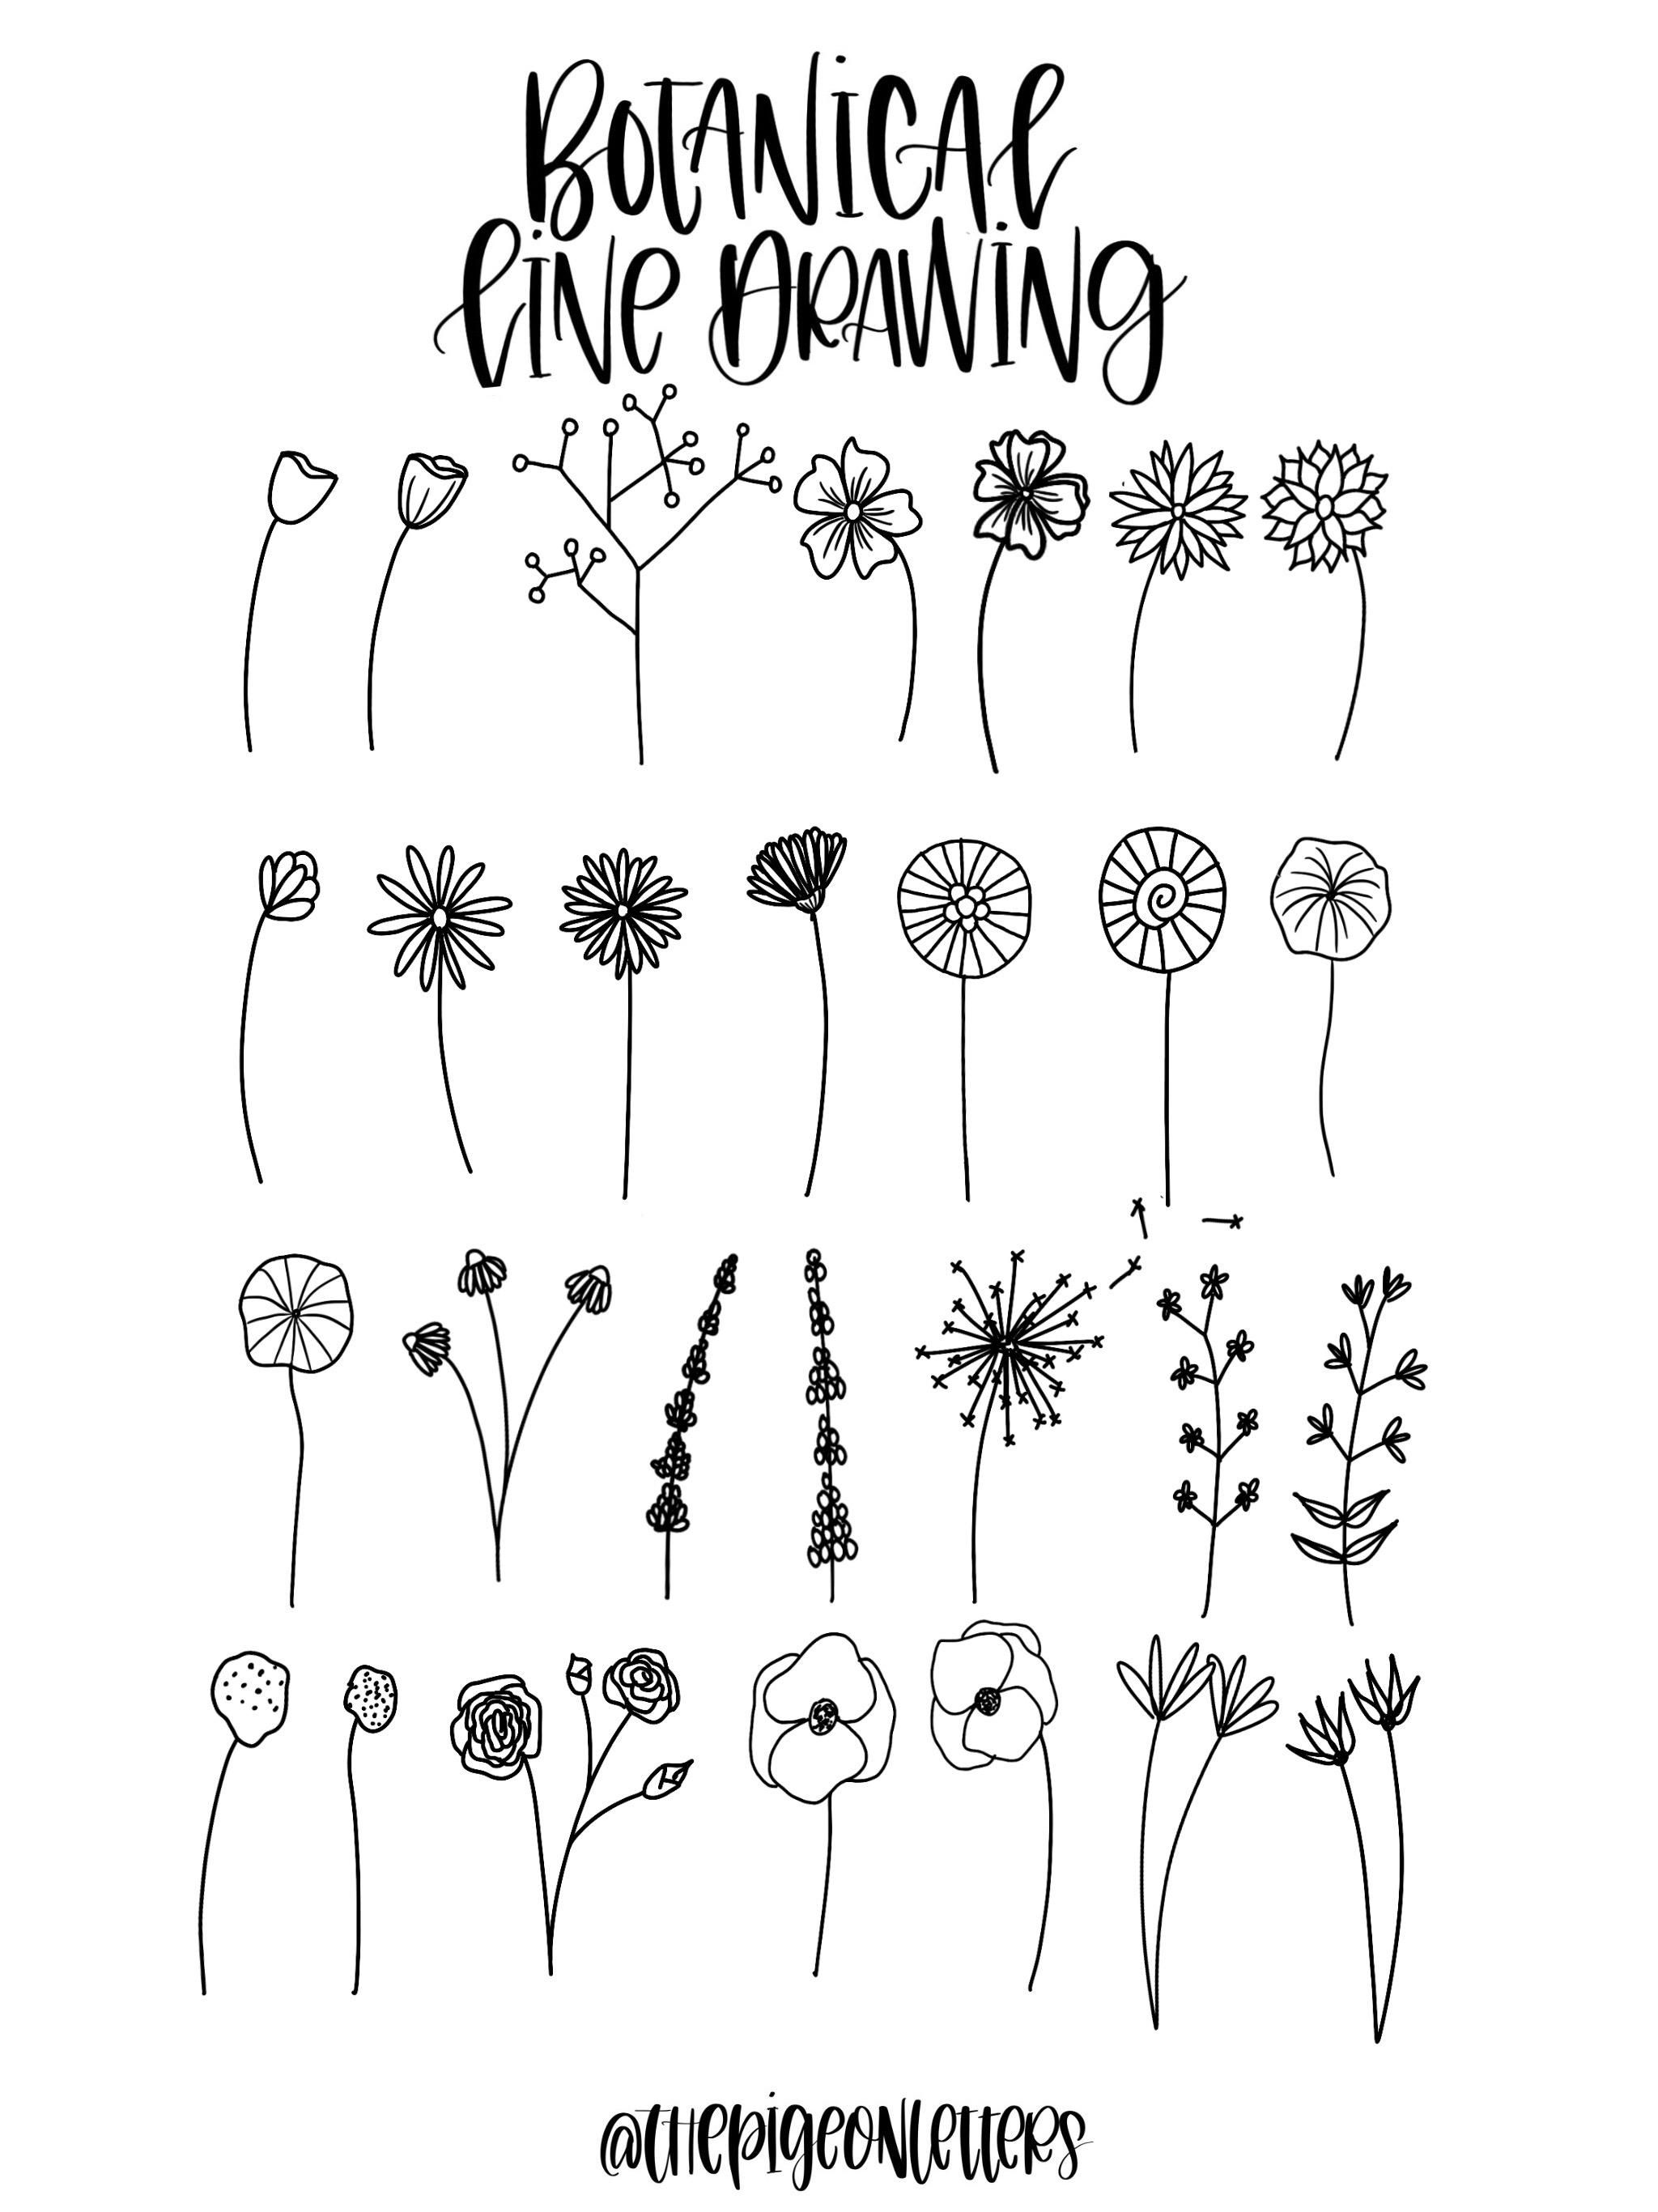 Line Art Tutorial Photo : Botanical line drawing skillshare art that inspires